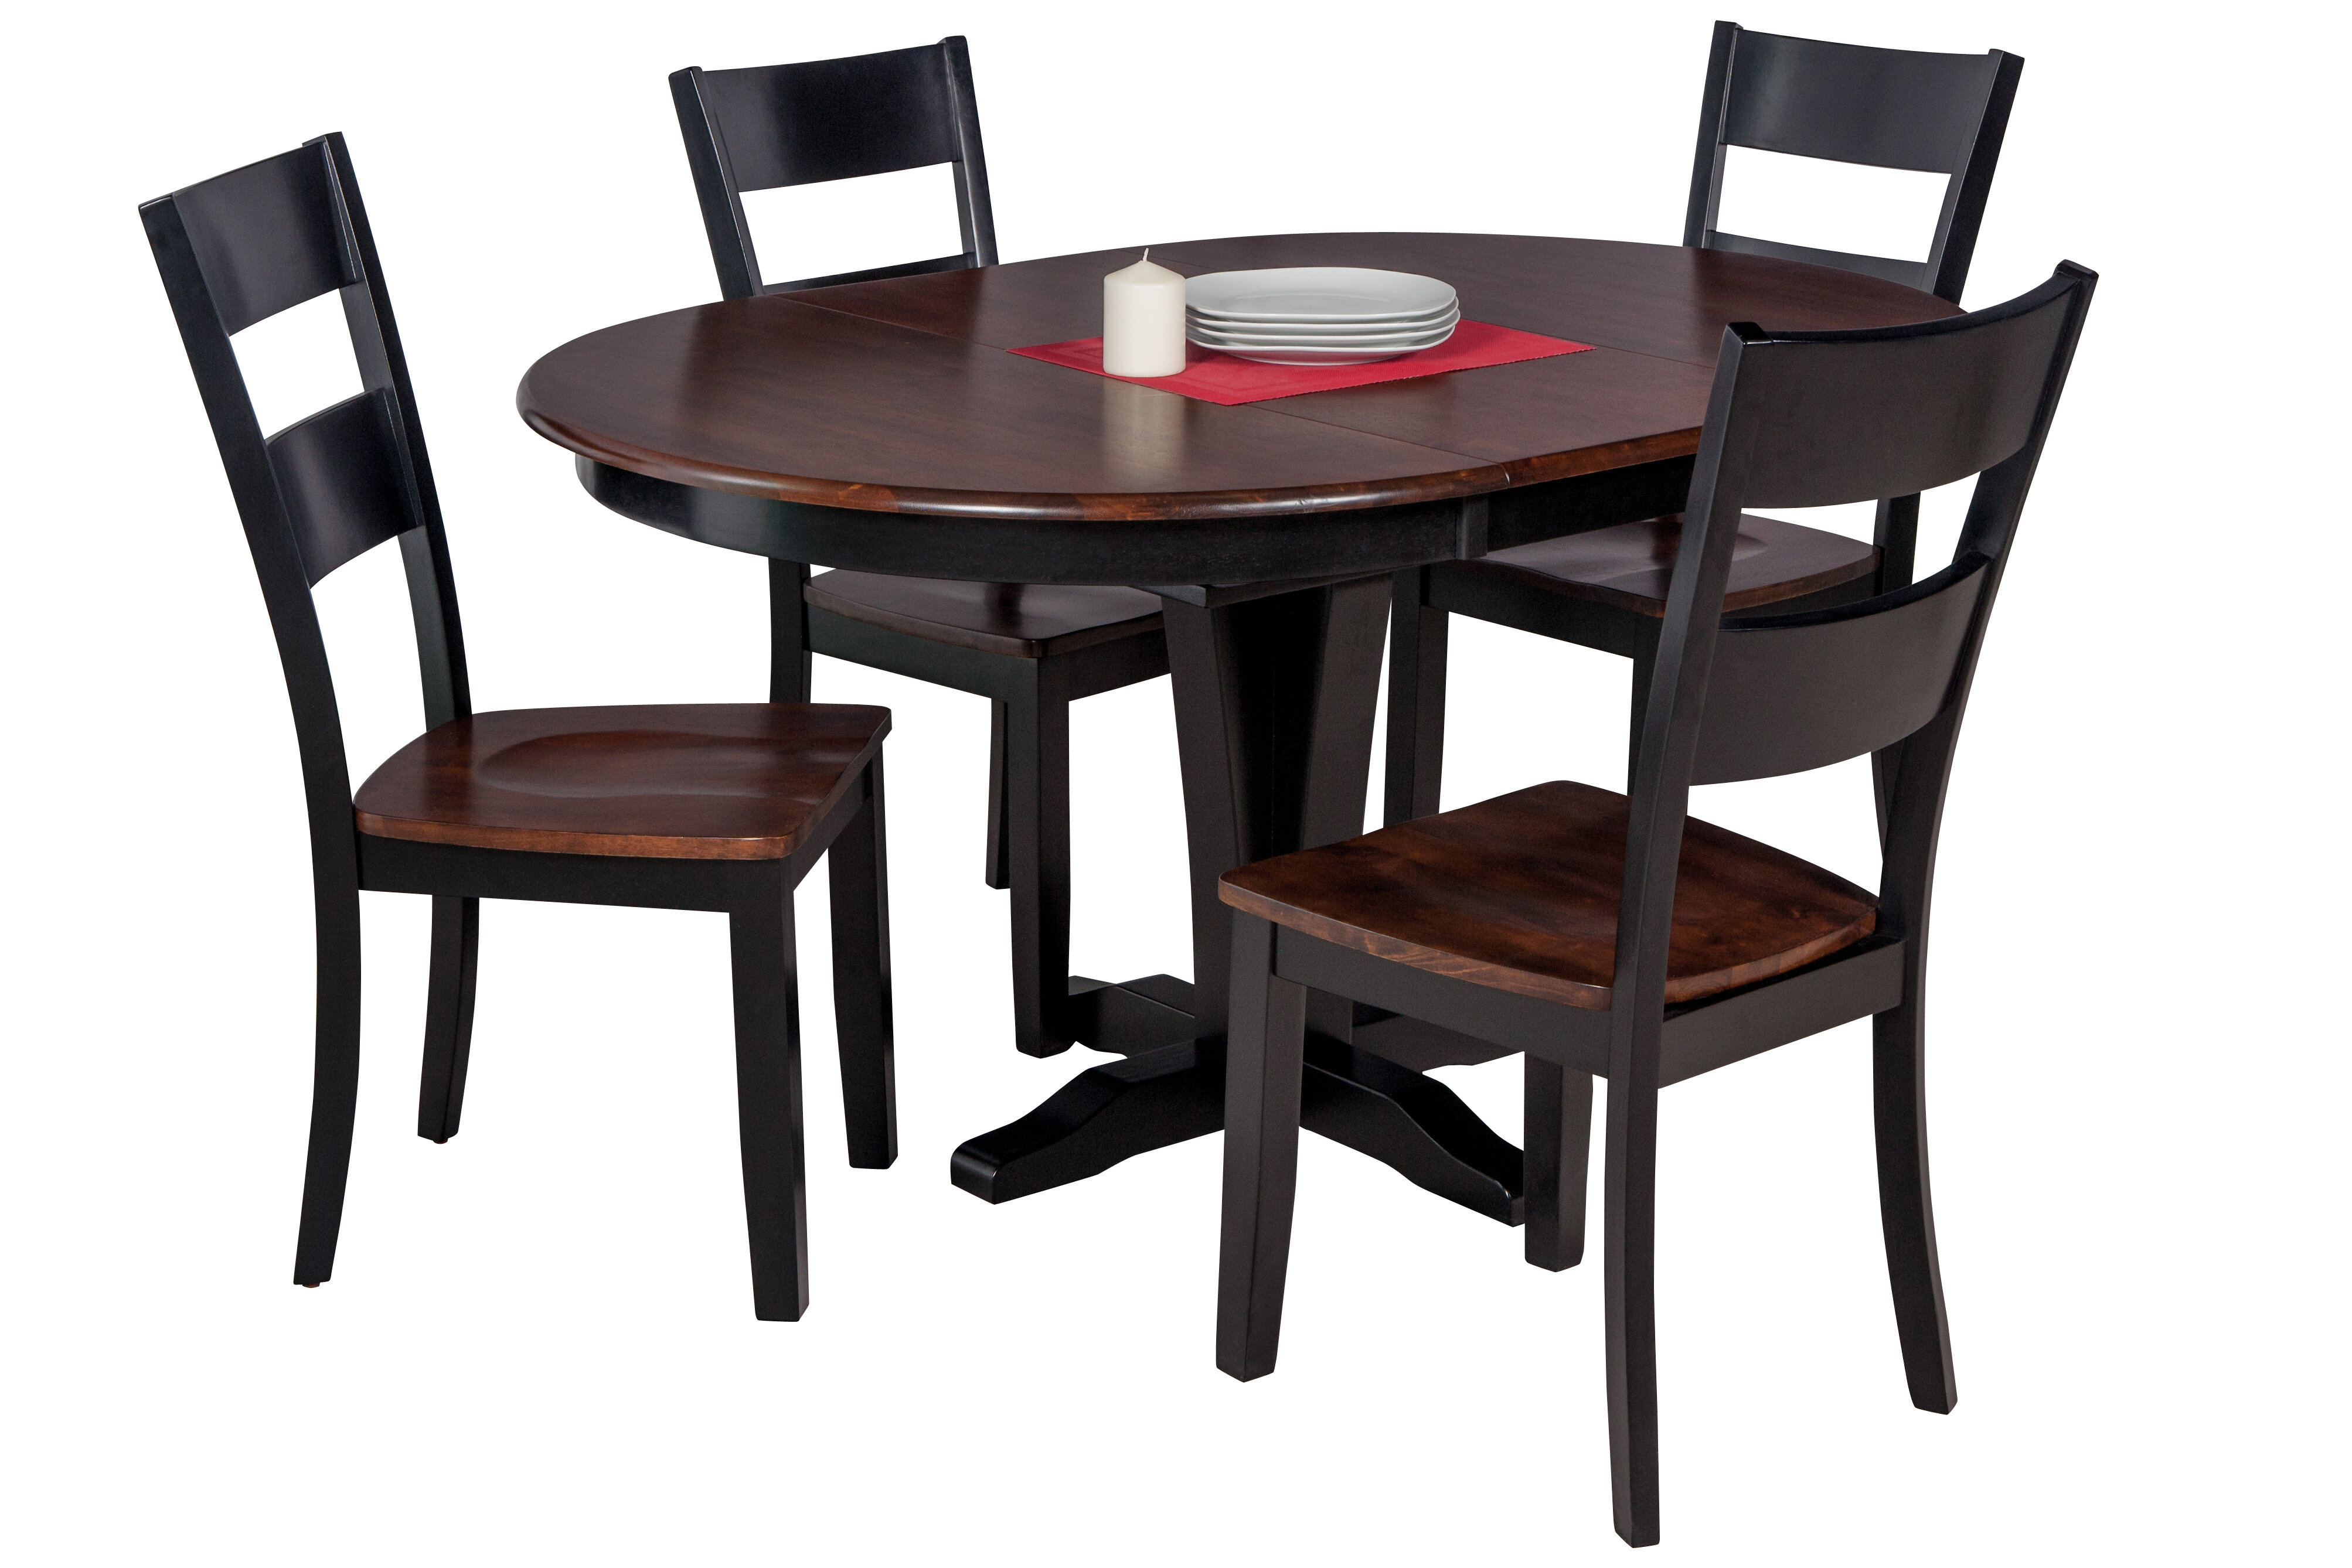 Darby Home Co Maryrose 5 Piece Solid Wood Dining Set With Butterfly Leaf Table